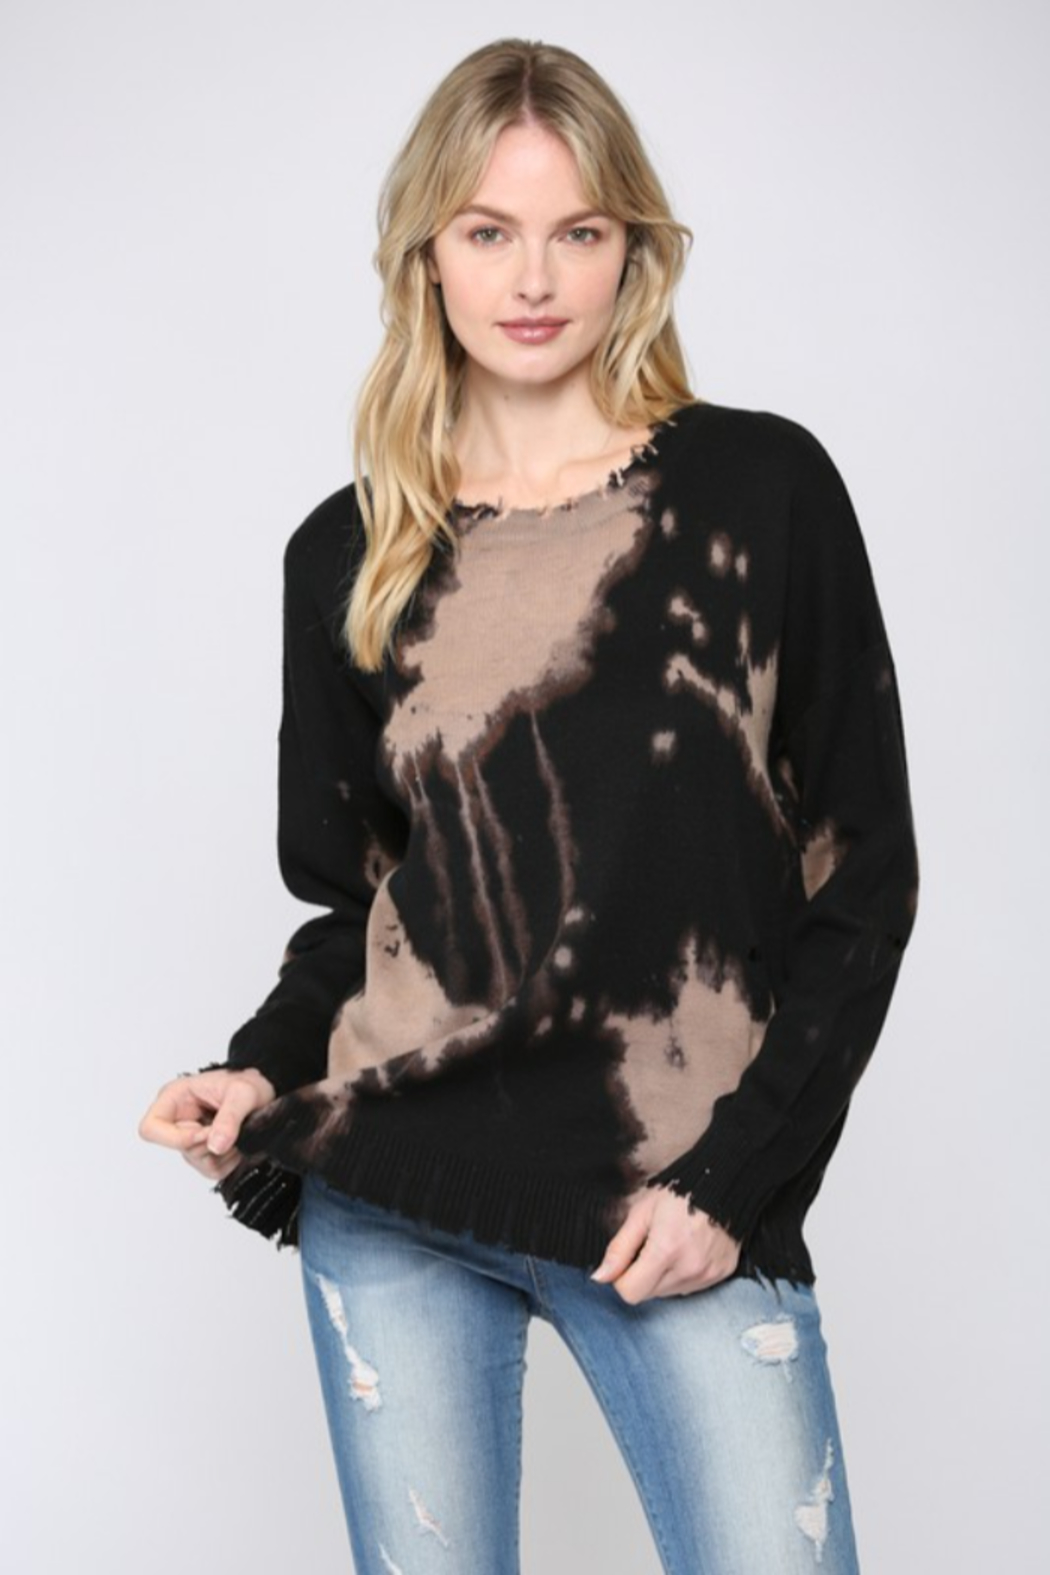 Fate Inc. Bleached Distressed Pullover Sweater Top - Main Image